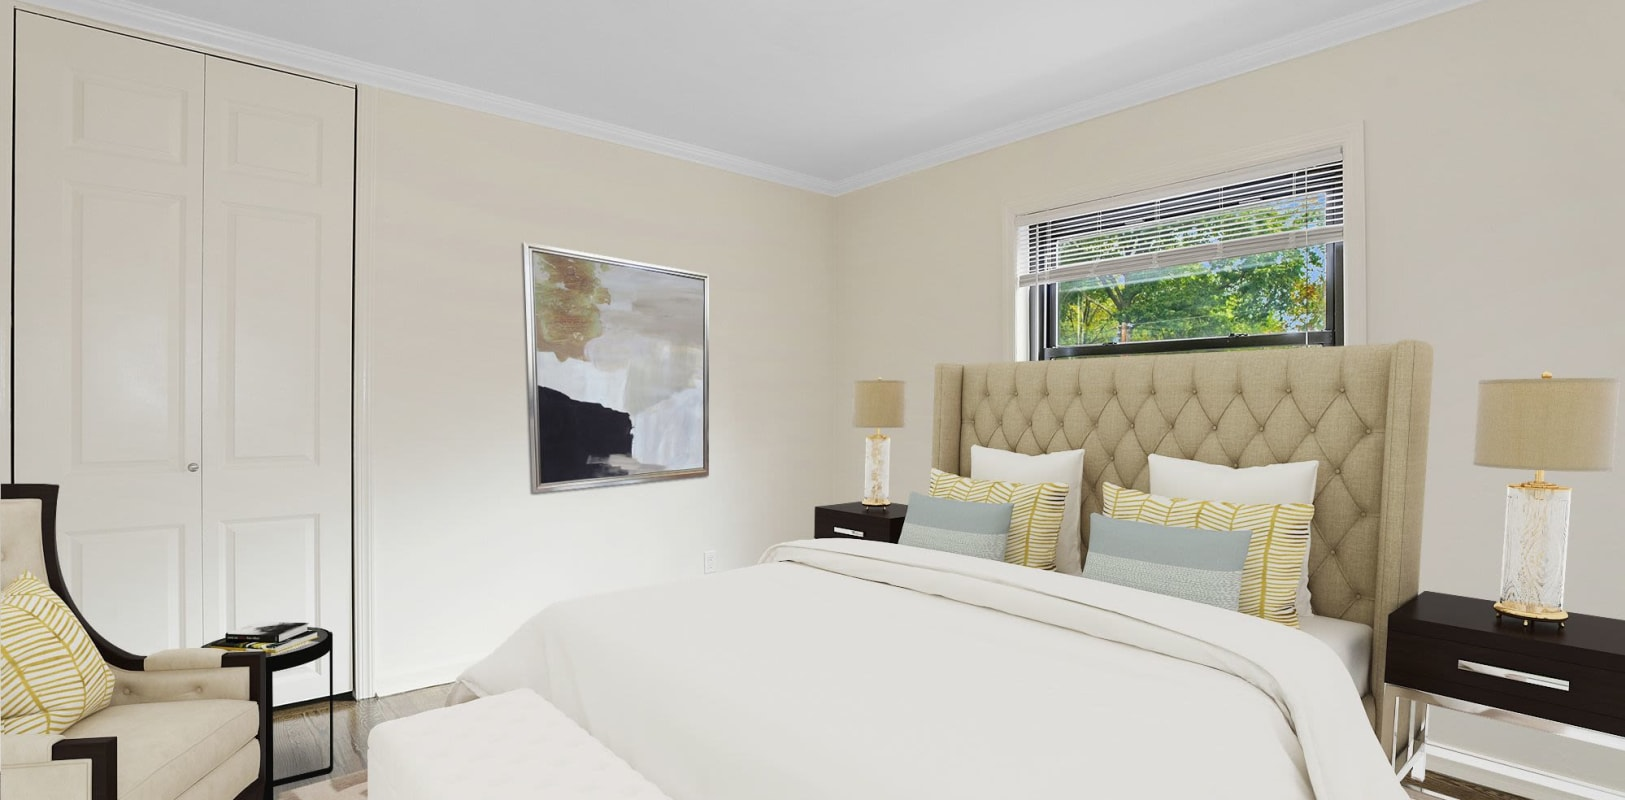 Cozy bedroom at Continental Gardens in River Edge, New Jersey